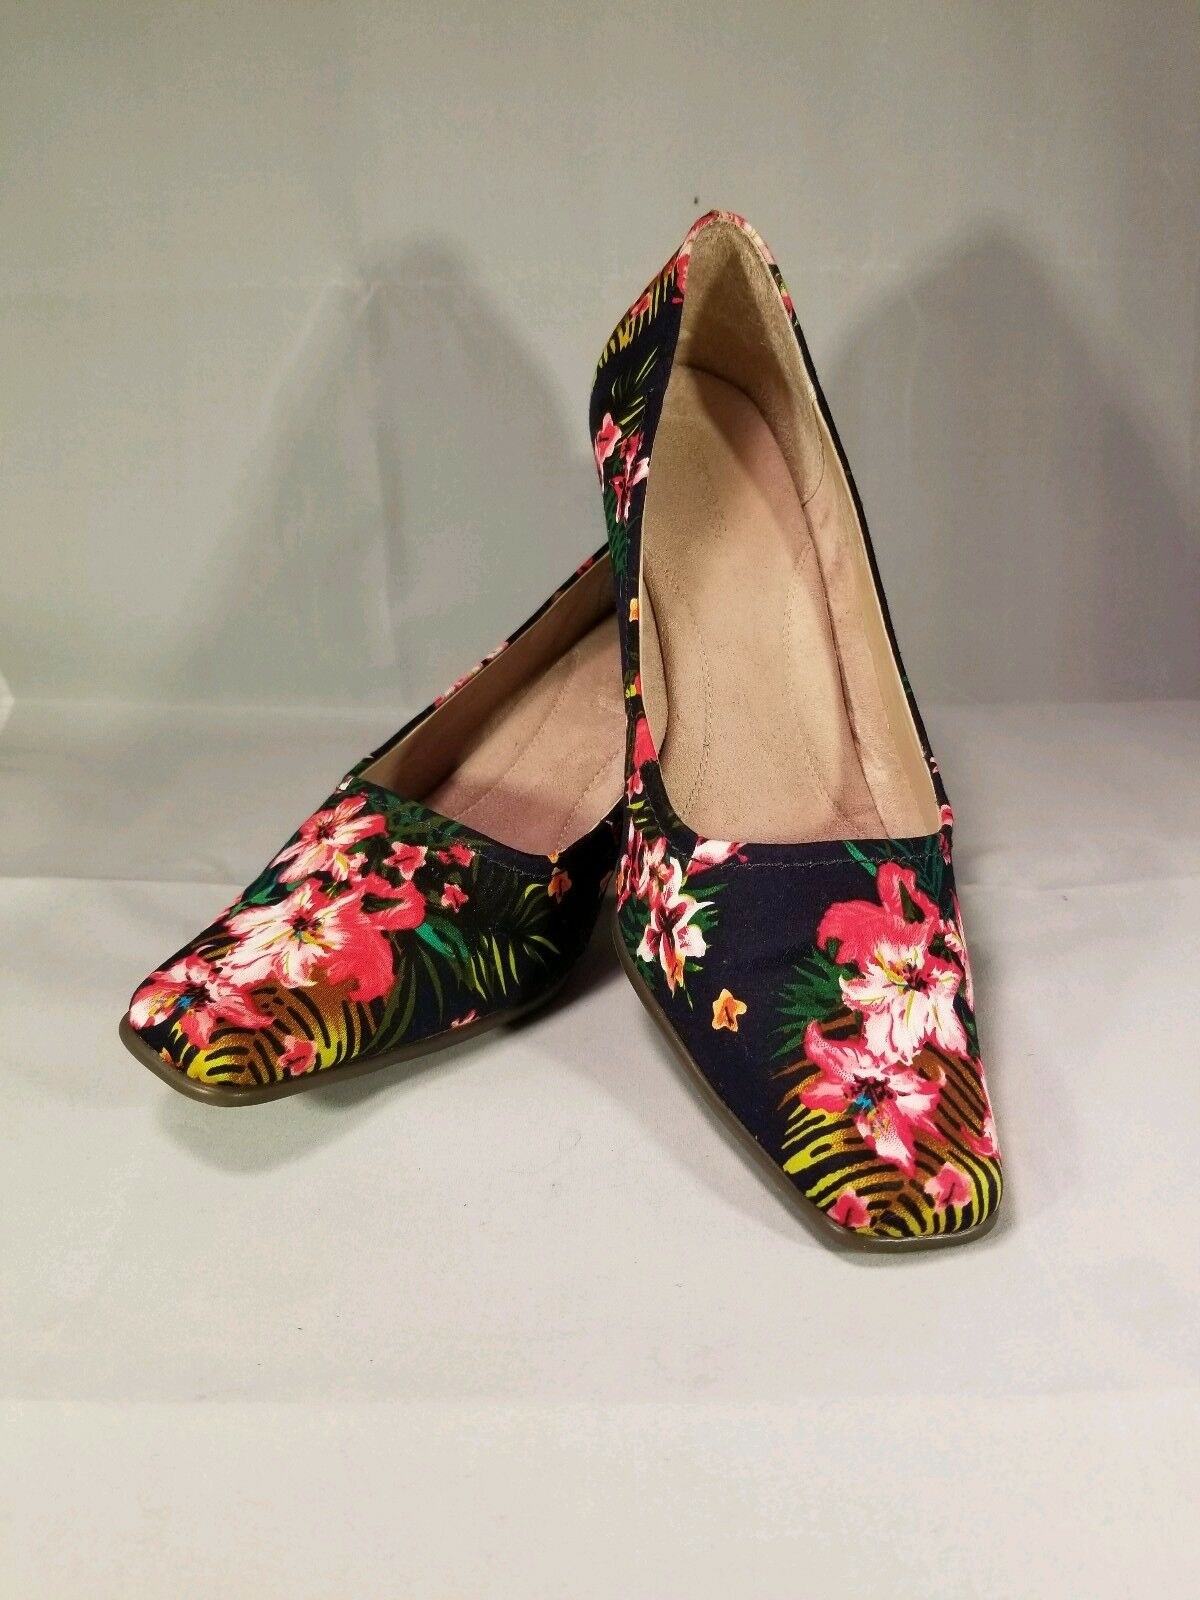 e760a95b3263c Aerosoles Aerosoles Aerosoles Envy Hawaiian Hibiscus Floral Womens ...